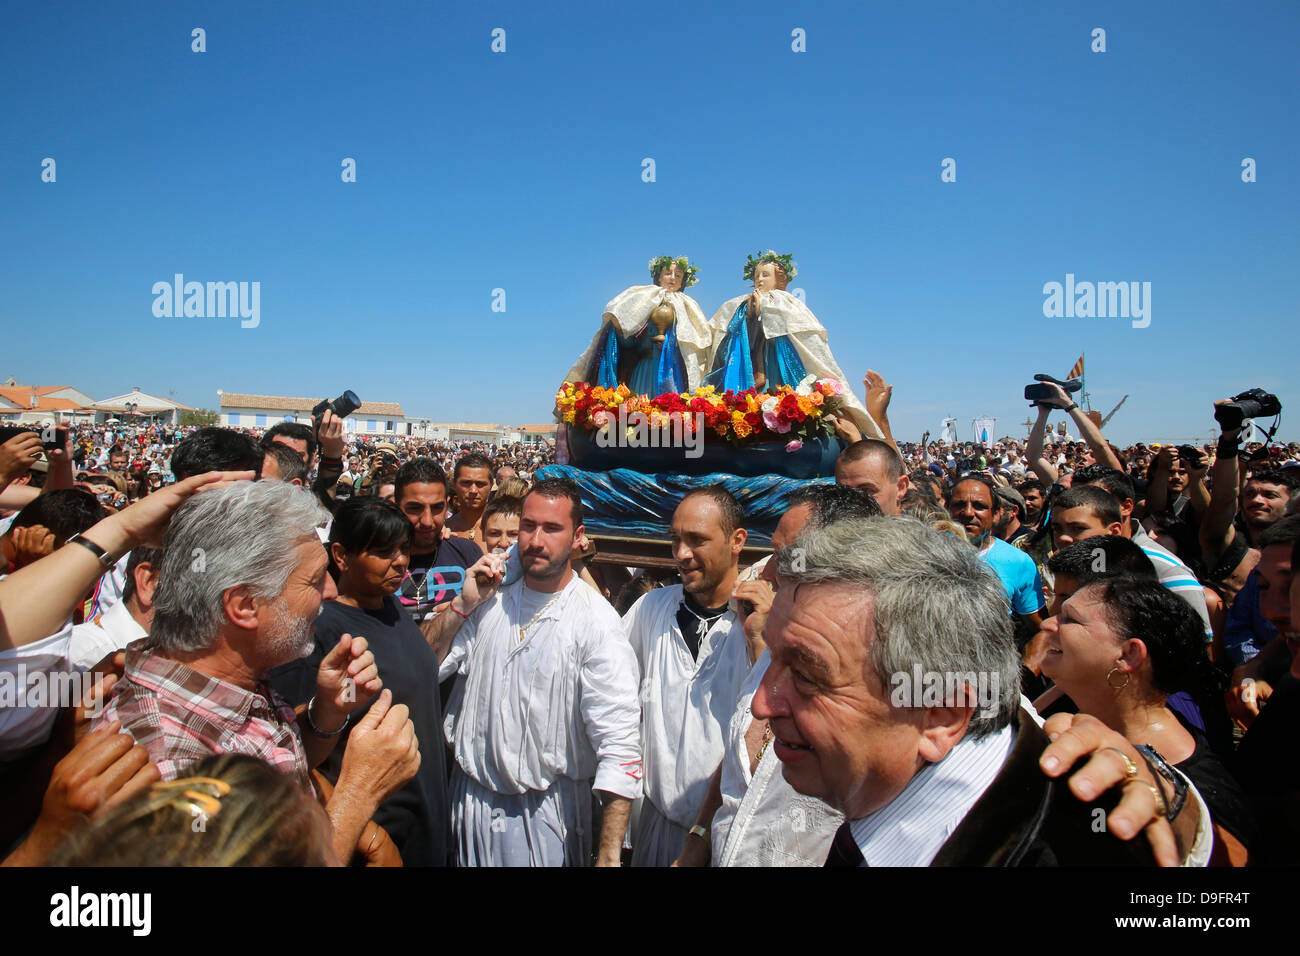 Procession with statues of patron saints Marie Jacobe and Marie Salome at Les Saintes-Maries-de-la-Mer, Bouches - Stock Image